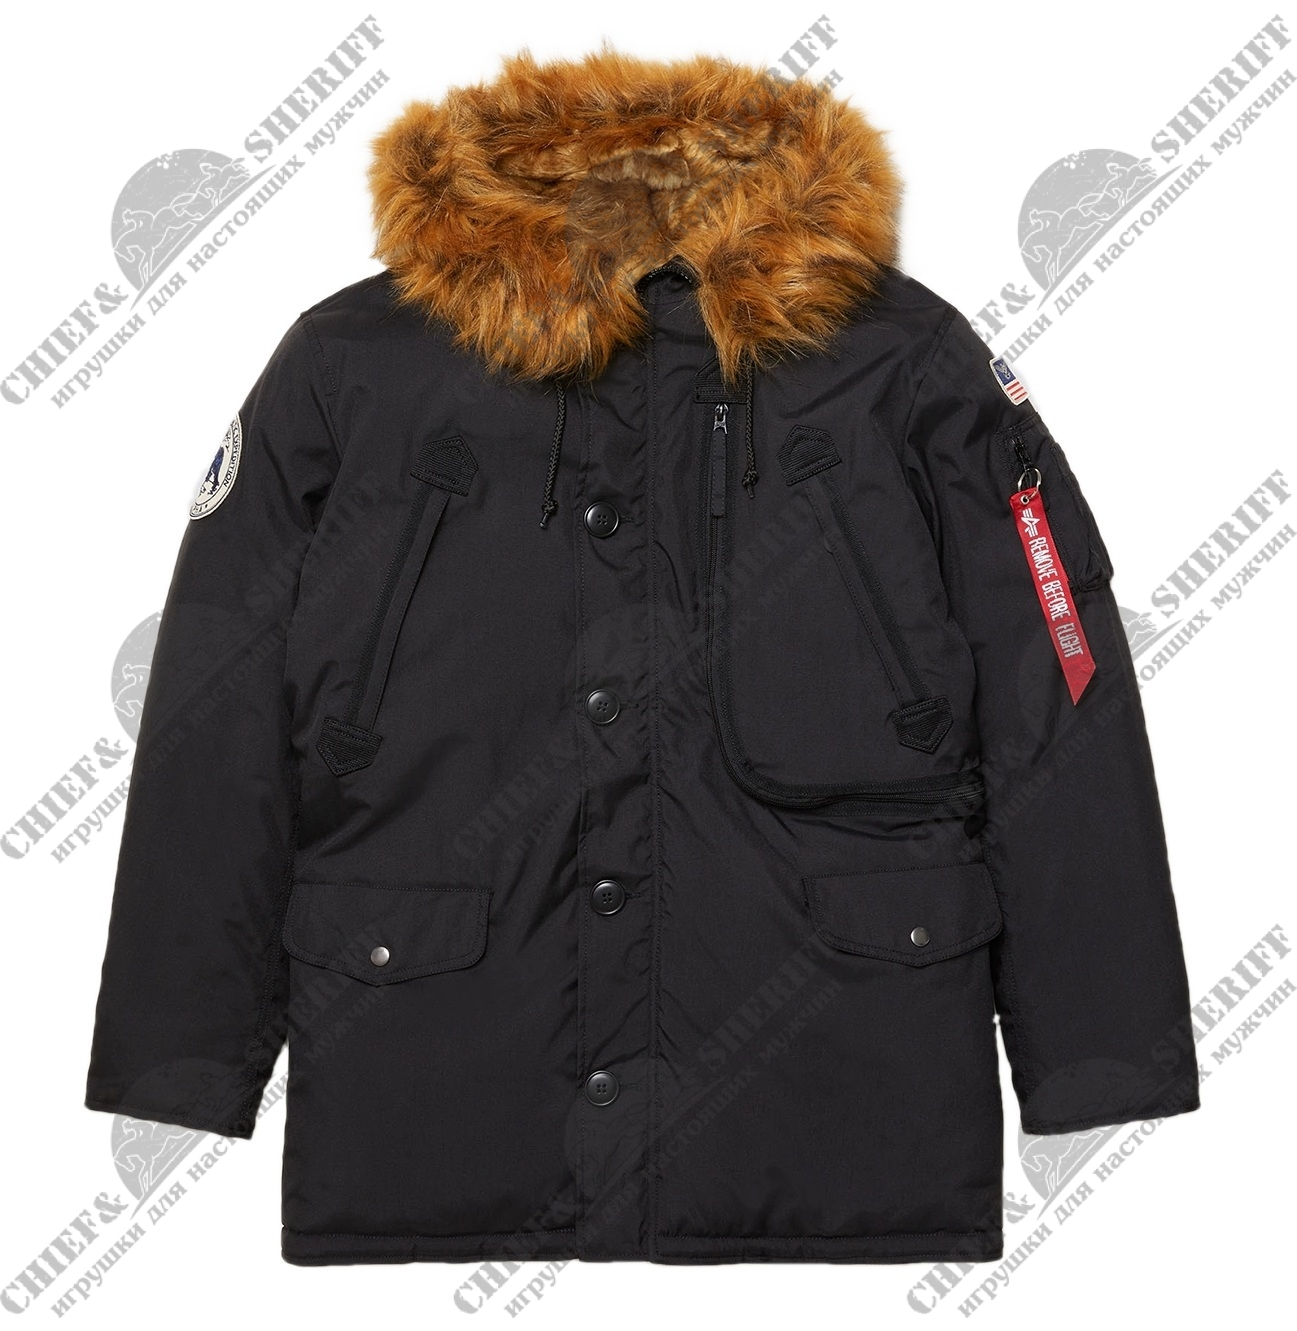 Куртка аляска Alpha Industries N-3B Alpine parka, black, MJN49503B